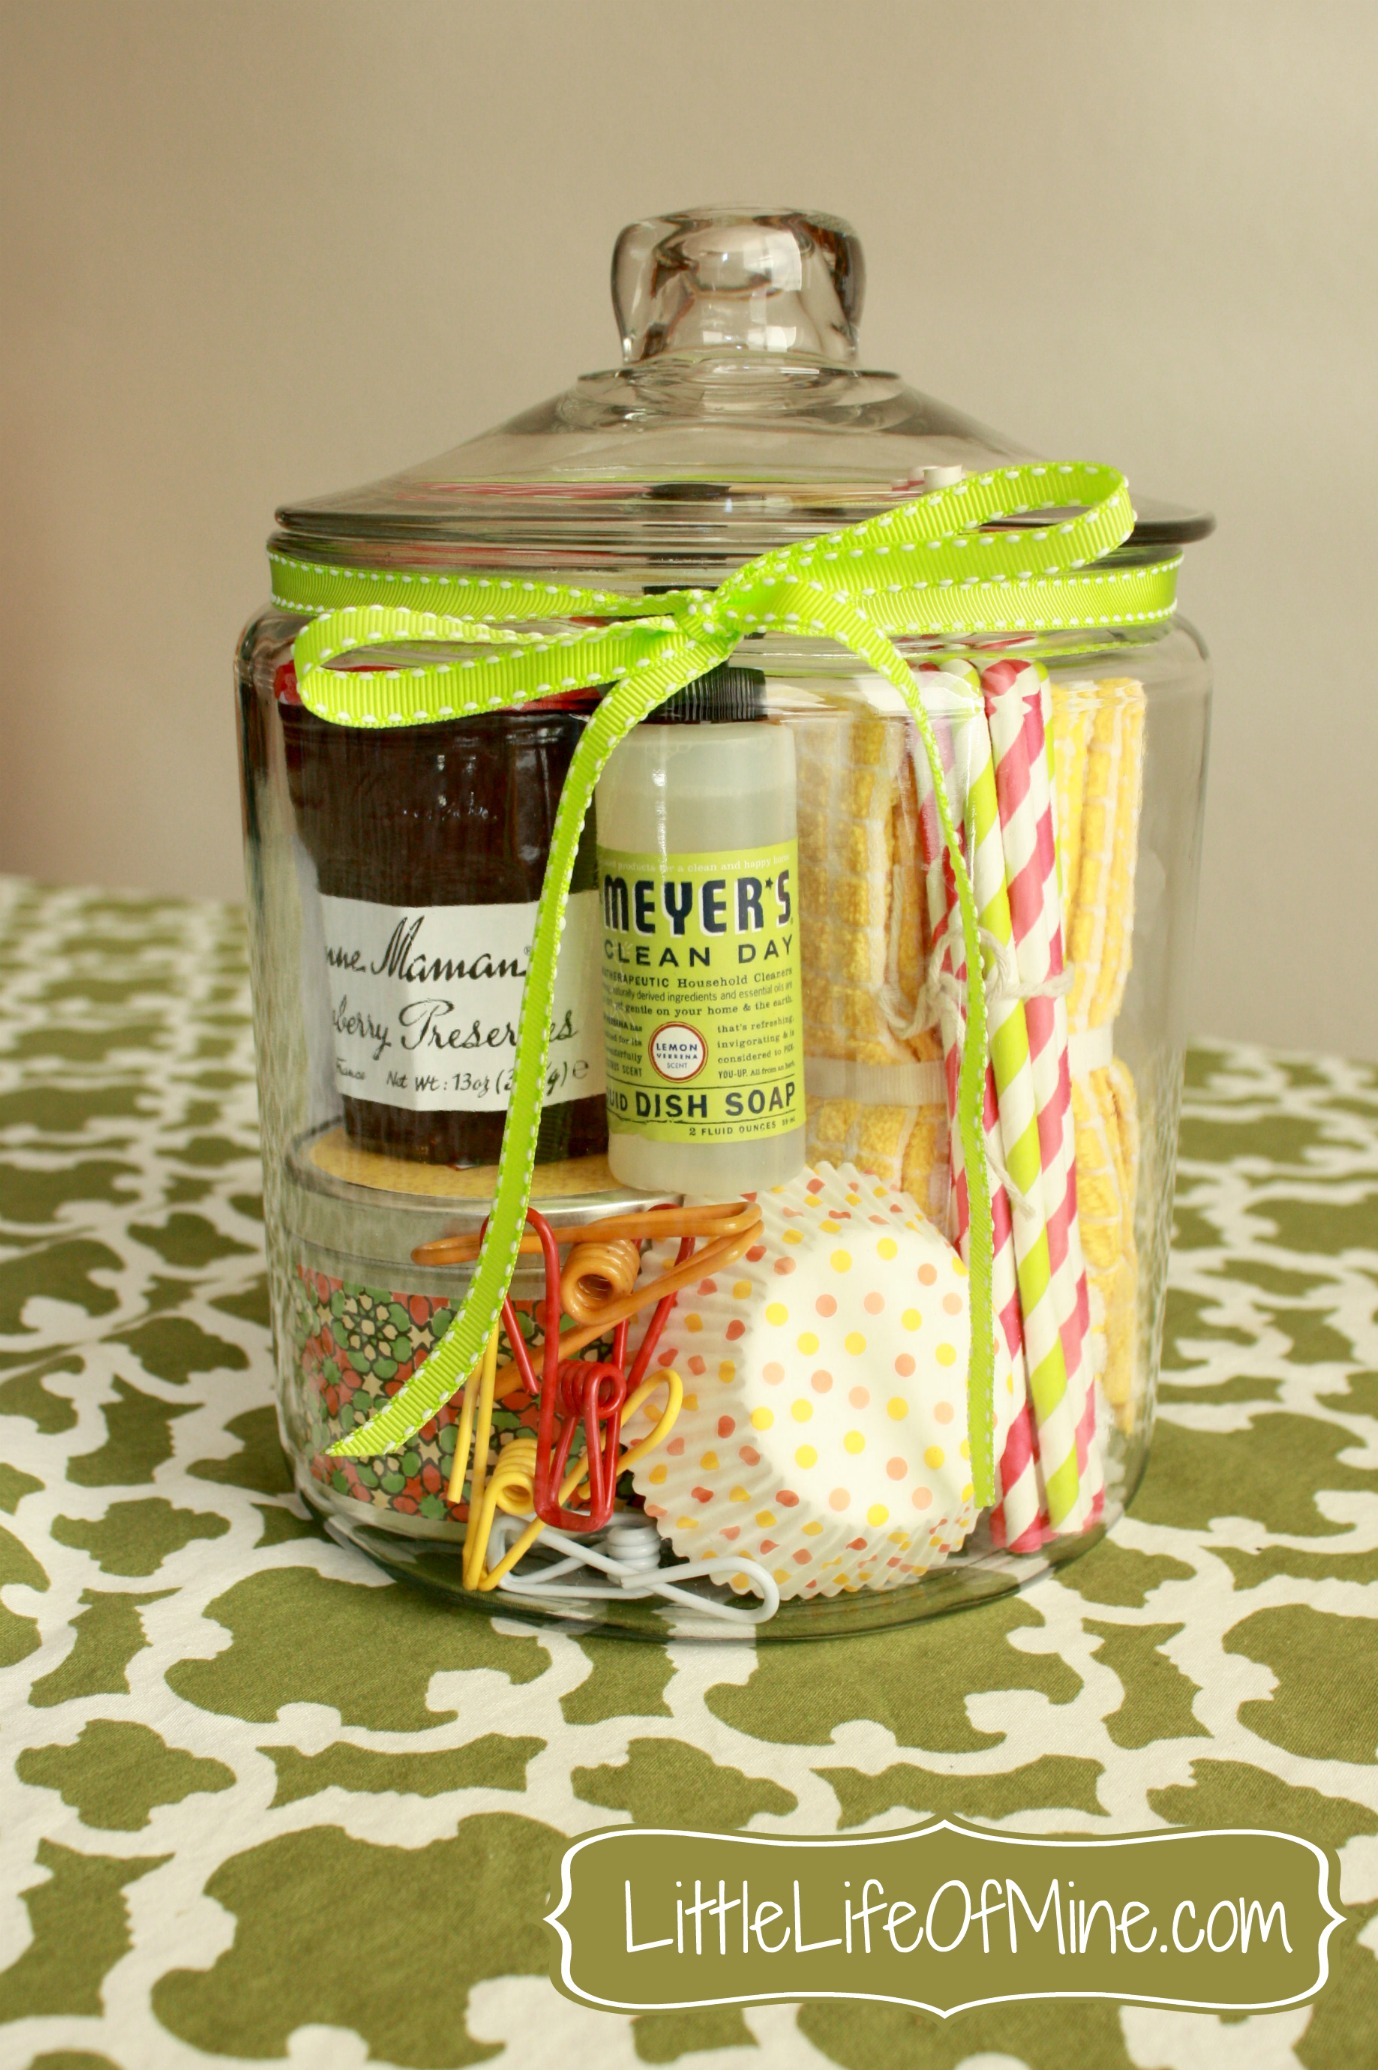 10 Lovely Housewarming Gift Ideas For Women housewarming gift in a jar littlelifeofmine 3 2020